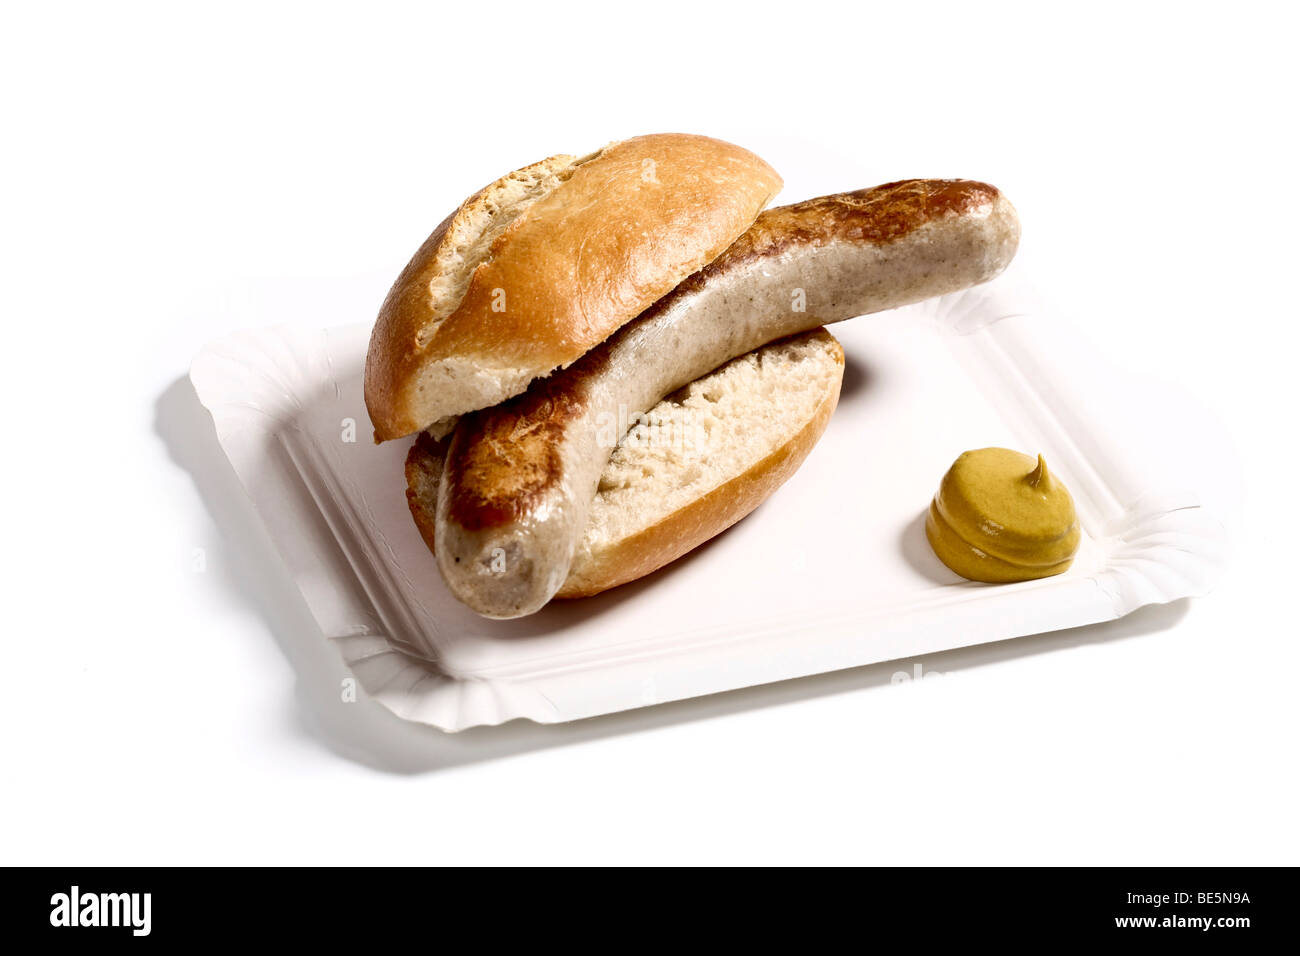 Bratwurst sausage in a bun with mustard on a paper plate Stock Photo